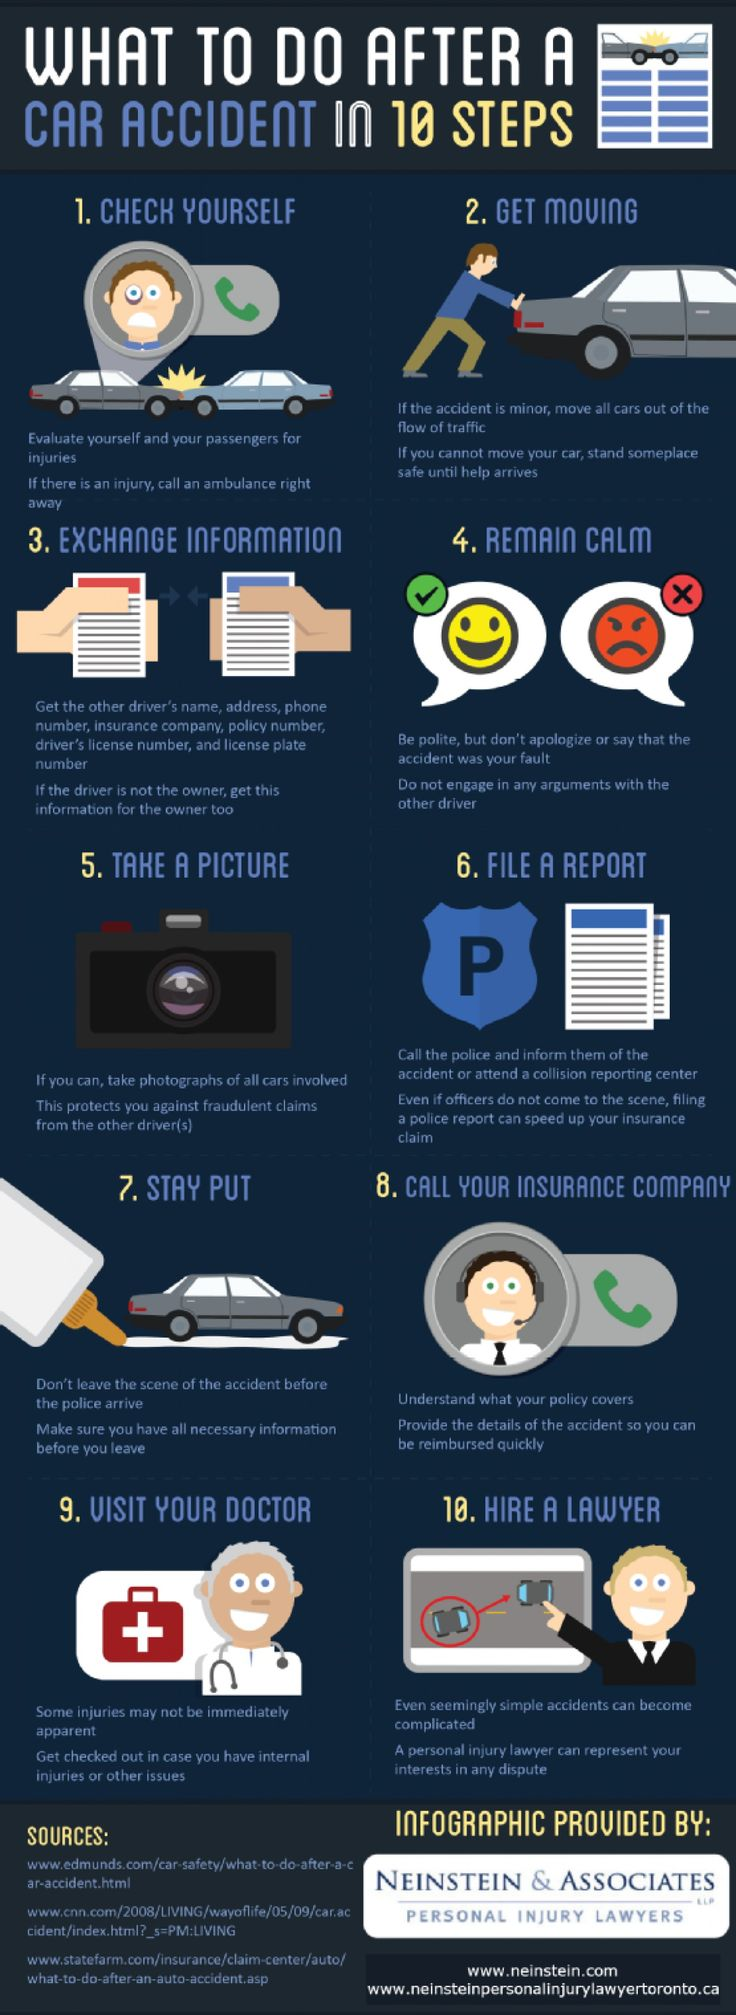 What to Do After a Car Accident in 10 Steps Infographic #ESCORT #DriveSmarter #cars